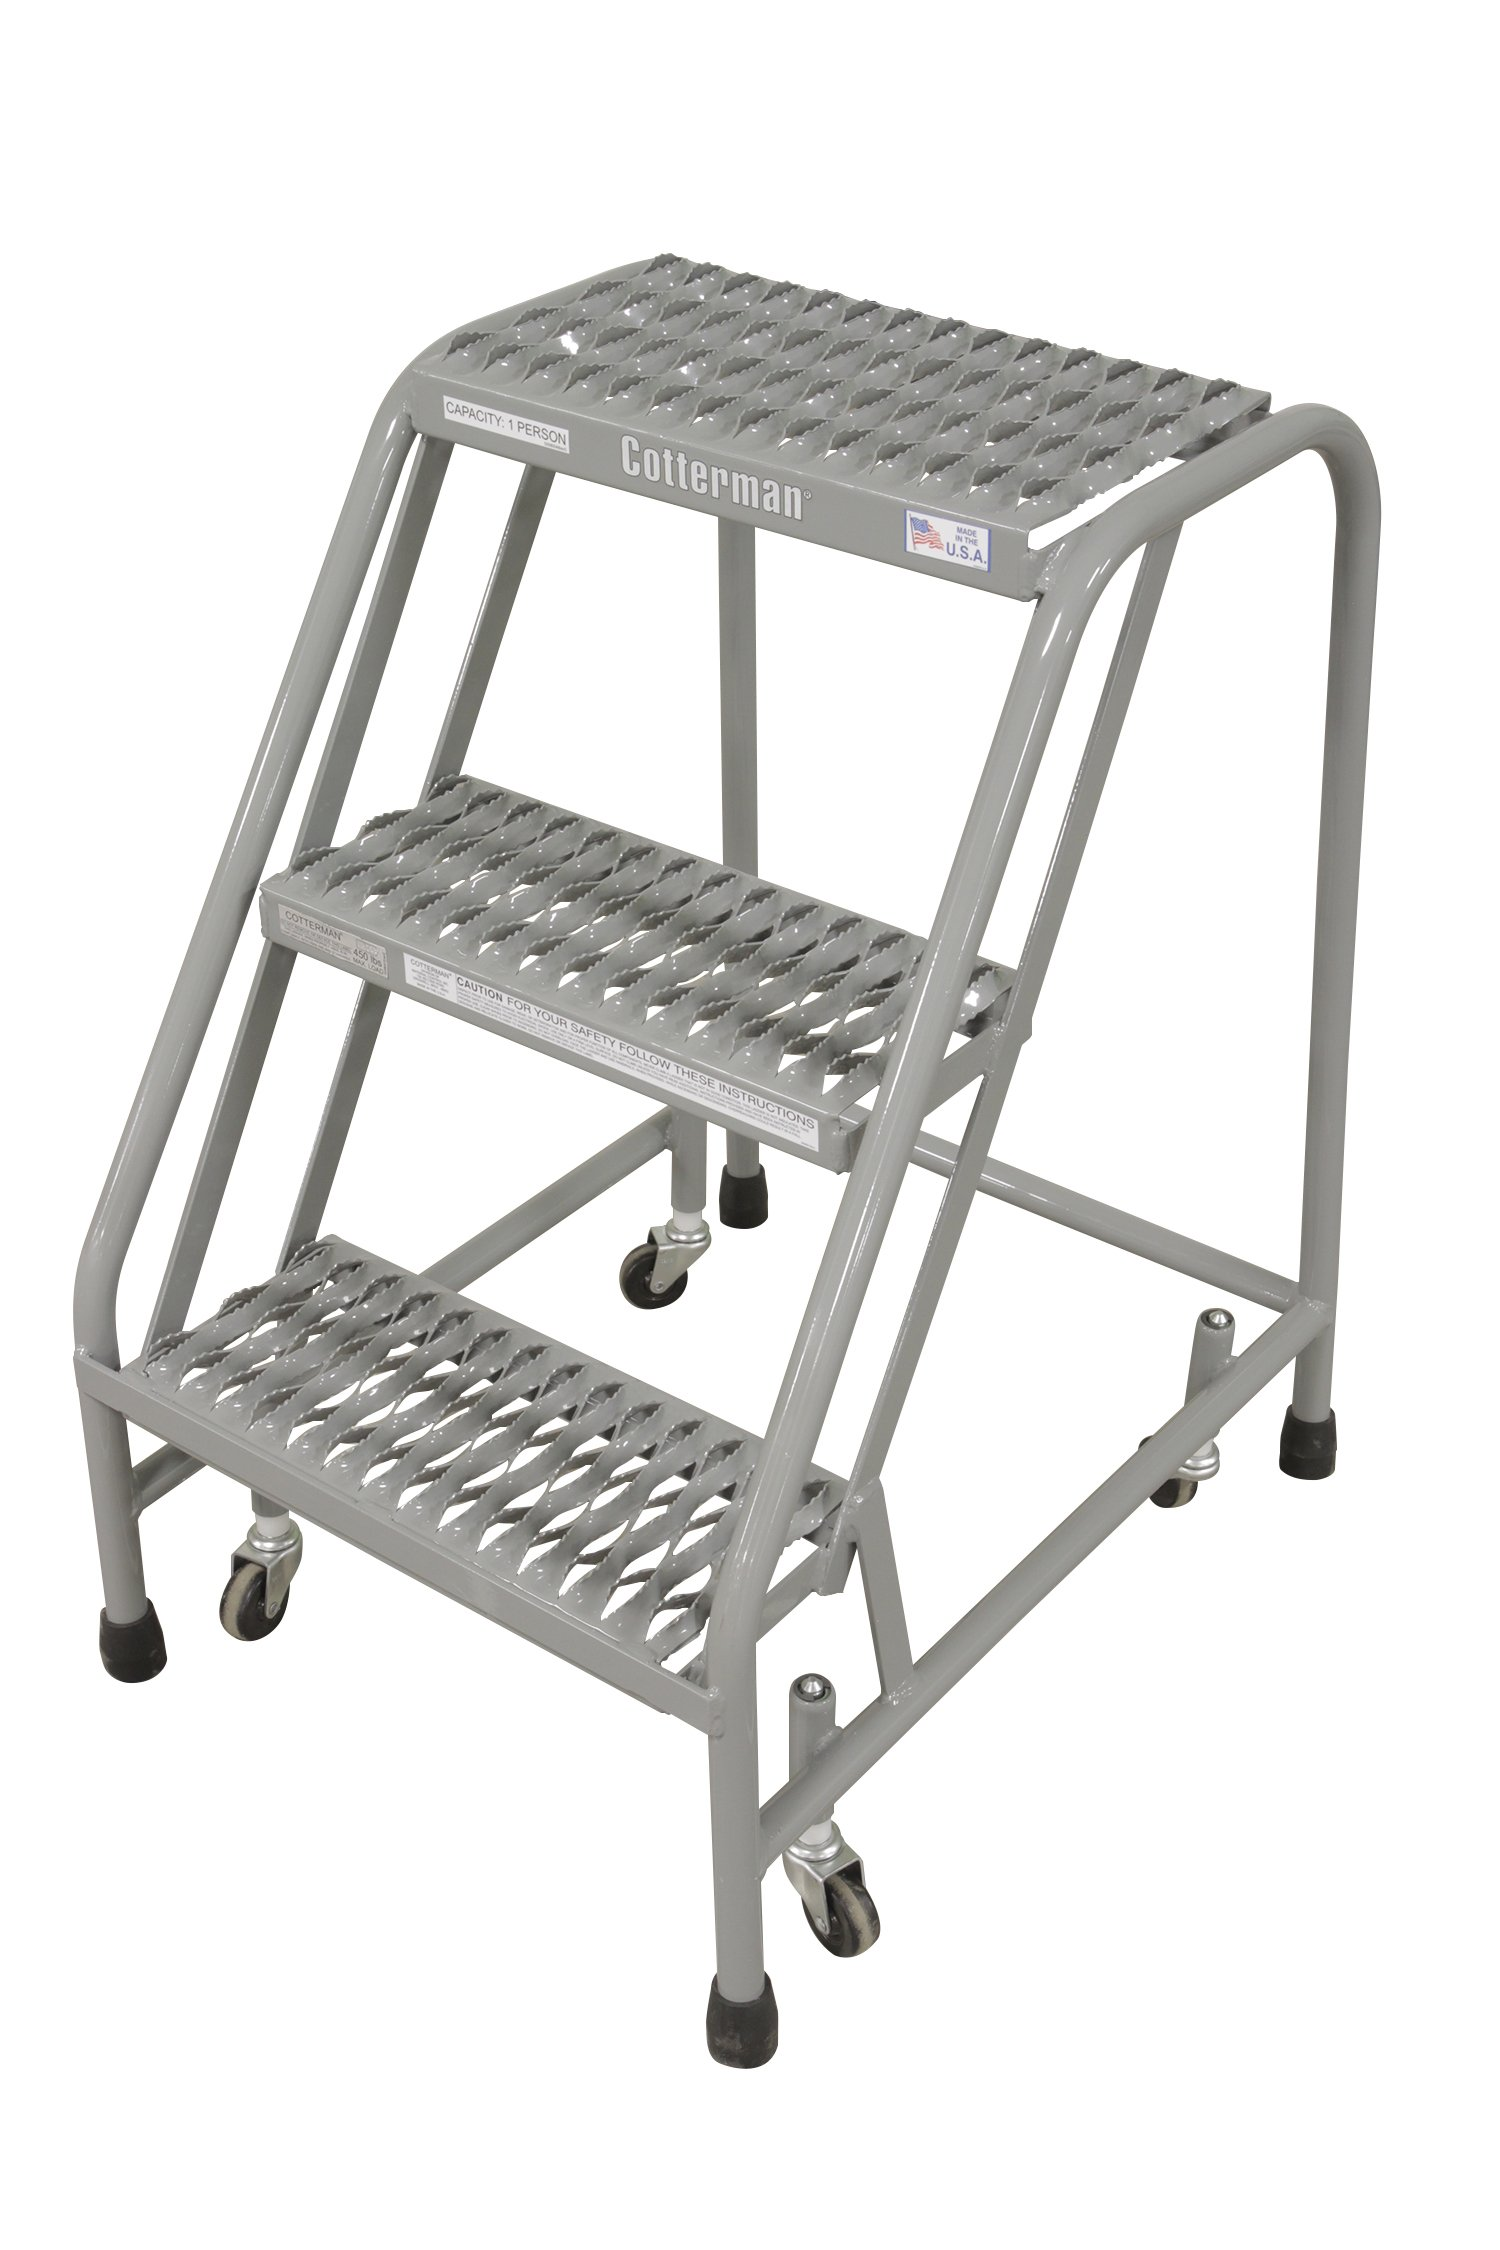 Cotterman 1003N1820A3E10B3C1P1 All Welded Ready to Use Rolling Steel Safety Ladder, 3-Step, 30'' Top Step Height, Serrated Tread, 450 lb Capacity